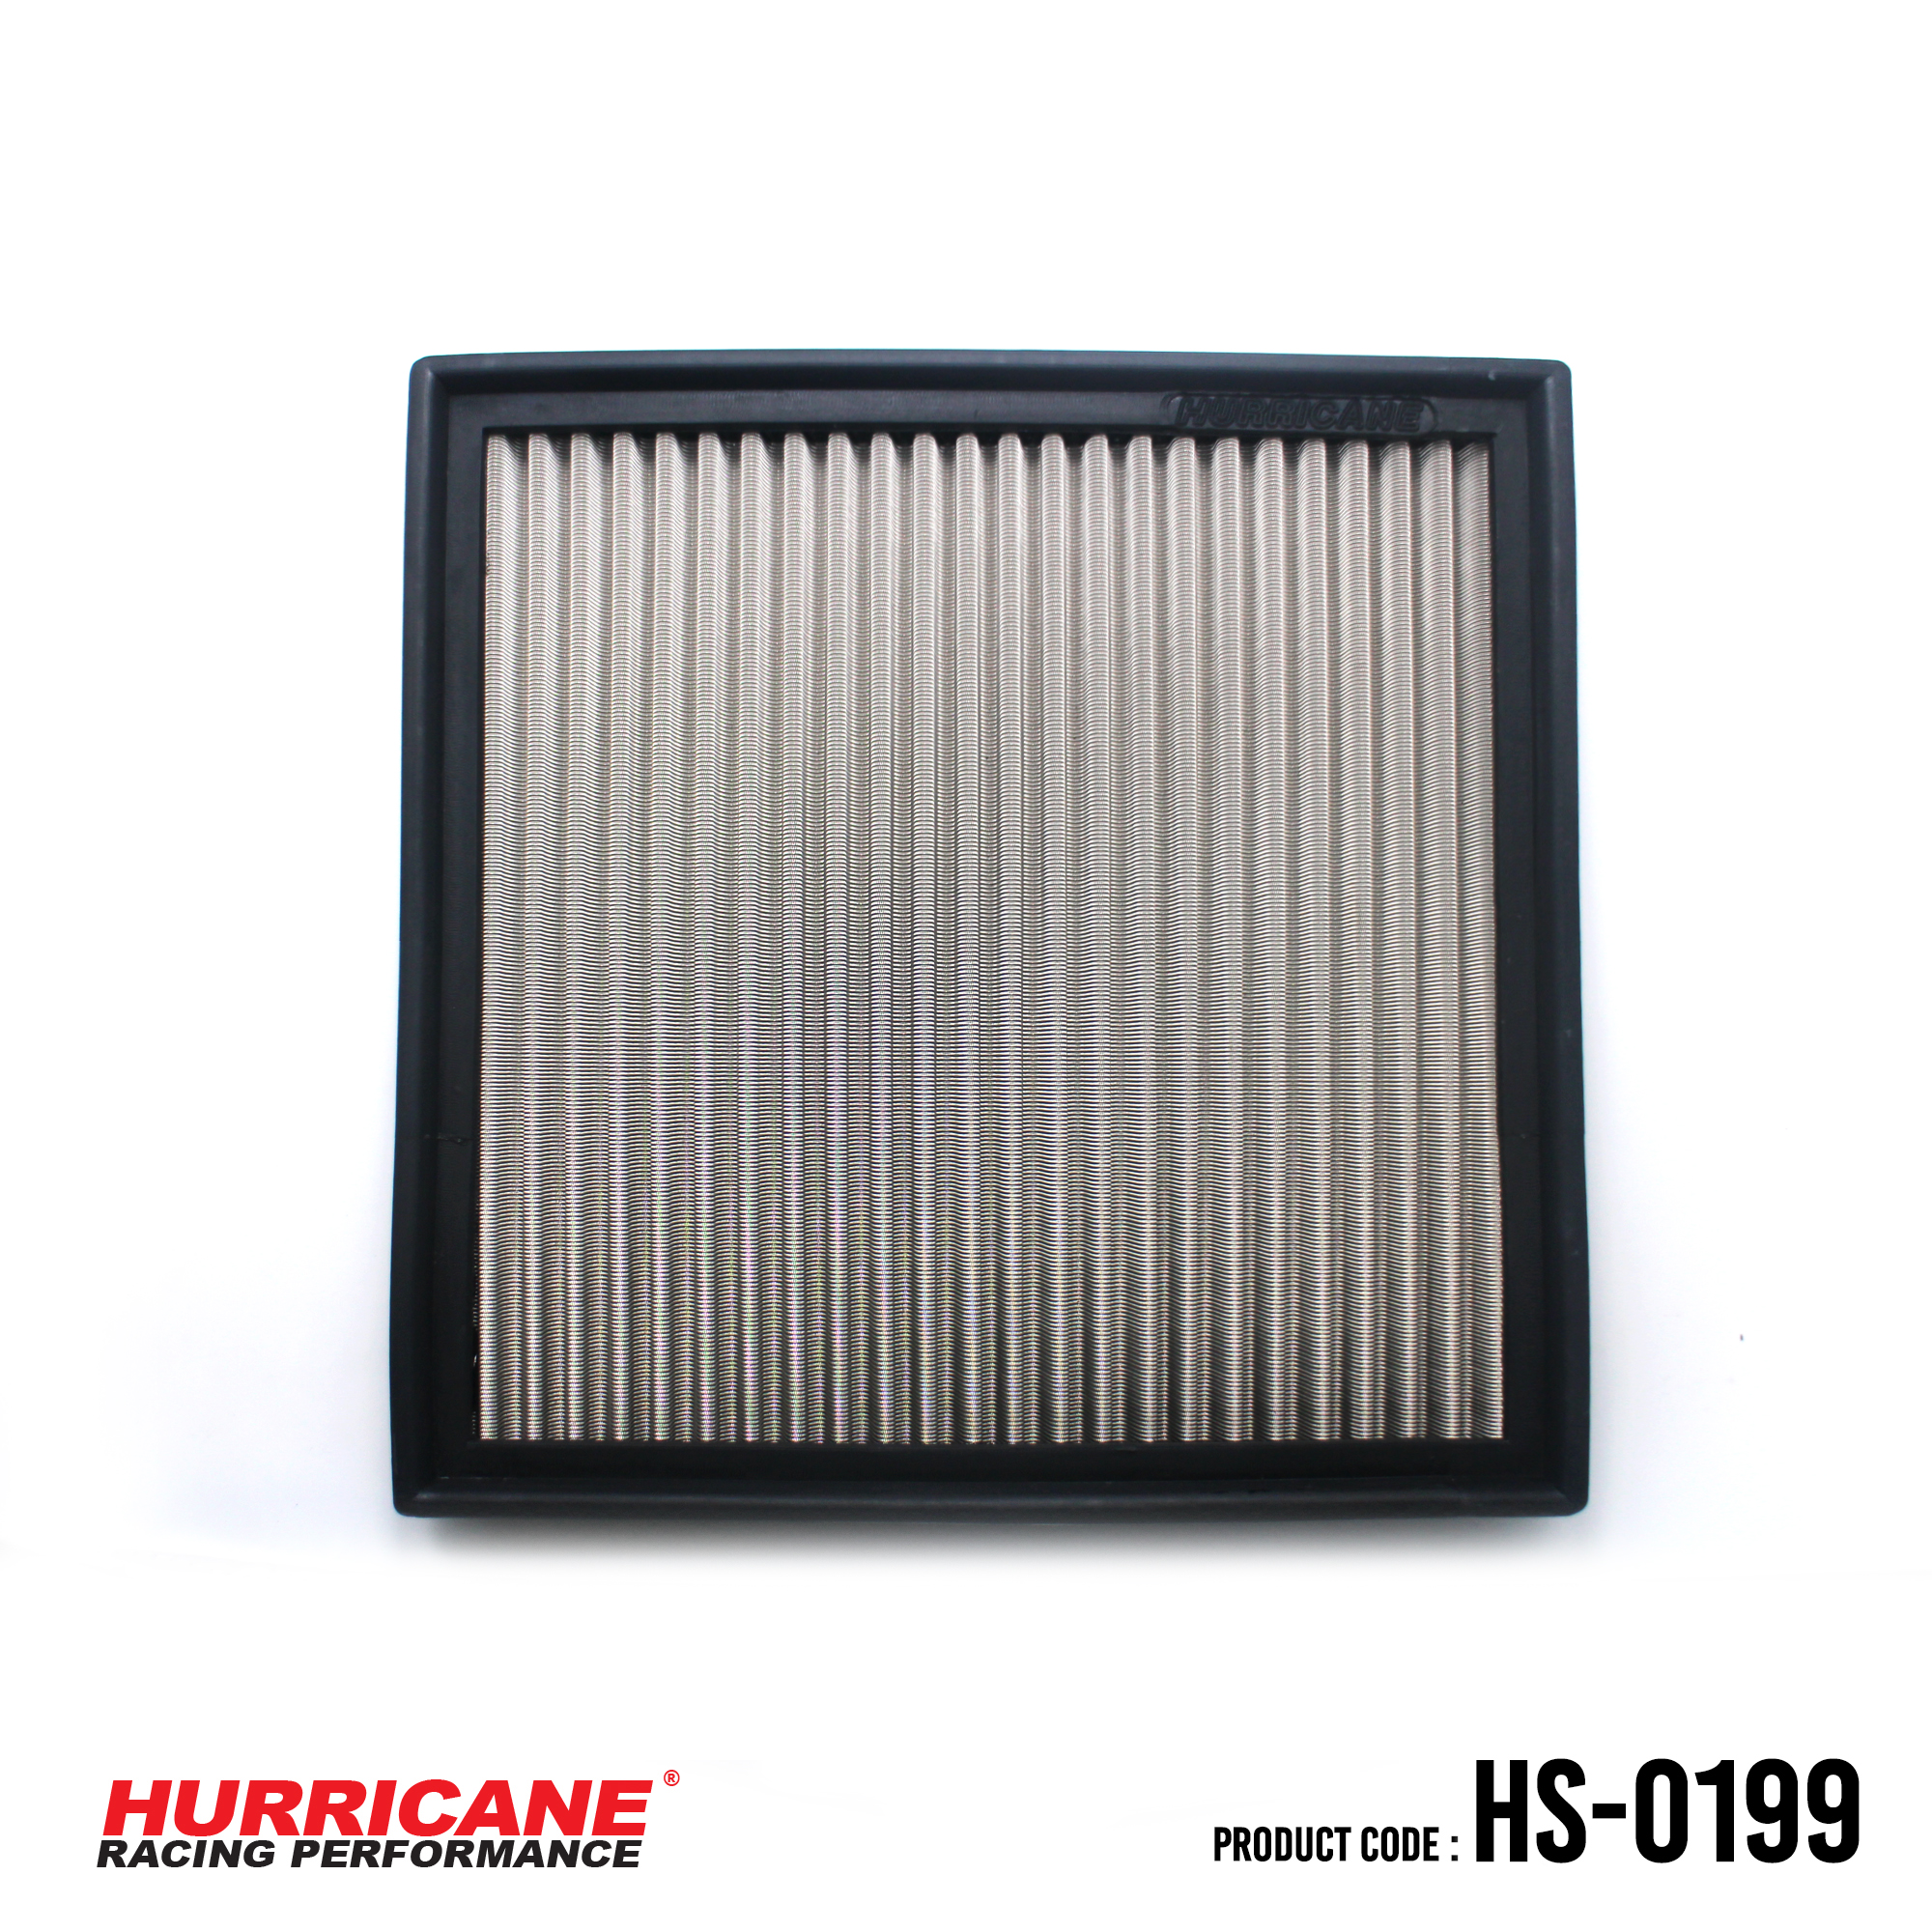 HURRICANE STAINLESS STEEL AIR FILTER FOR HS-0199 BMW